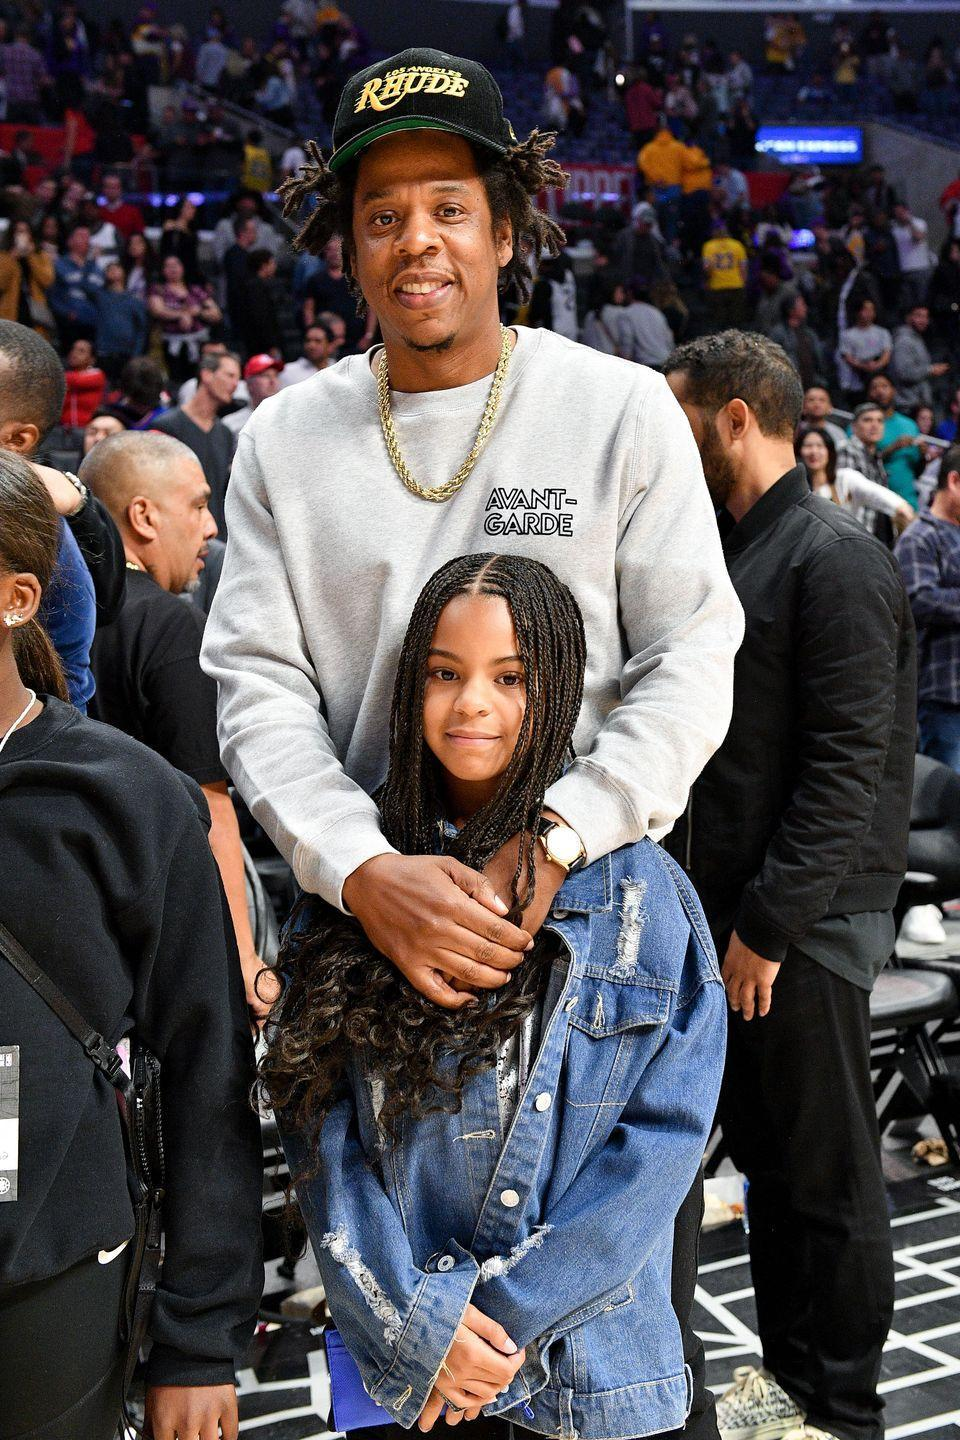 """<p><strong>Children</strong>: Blue Ivy Carter (8), Sir Carter (2), and Rumi Carter (2)</p><p><a href=""""https://www.oprahmag.com/entertainment/a27229698/beyonce-viral-fan-homecoming-coachella-sydney-hardeman/"""" rel=""""nofollow noopener"""" target=""""_blank"""" data-ylk=""""slk:Fans of Beyoncé"""" class=""""link rapid-noclick-resp"""">Fans of Beyoncé</a> already know all about her <a href=""""https://www.oprahmag.com/entertainment/a28400761/who-is-beyonce-husband-jay-z/"""" rel=""""nofollow noopener"""" target=""""_blank"""" data-ylk=""""slk:Grammy-award winning rapper and hip hop mogul husband"""" class=""""link rapid-noclick-resp"""">Grammy-award winning rapper and hip hop mogul husband</a> as well as their three kids: Blue Ivy, and twins Sir and Rumi. Although the power couple values their privacy, they occasionally make public appearances with their children, including this <a href=""""https://www.oprahmag.com/entertainment/a31400509/jay-z-blue-ivy-lebron-james-basketball-game-video/"""" rel=""""nofollow noopener"""" target=""""_blank"""" data-ylk=""""slk:father-daughter outing at a Lakers game"""" class=""""link rapid-noclick-resp"""">father-daughter outing at a Lakers game</a>. </p>"""